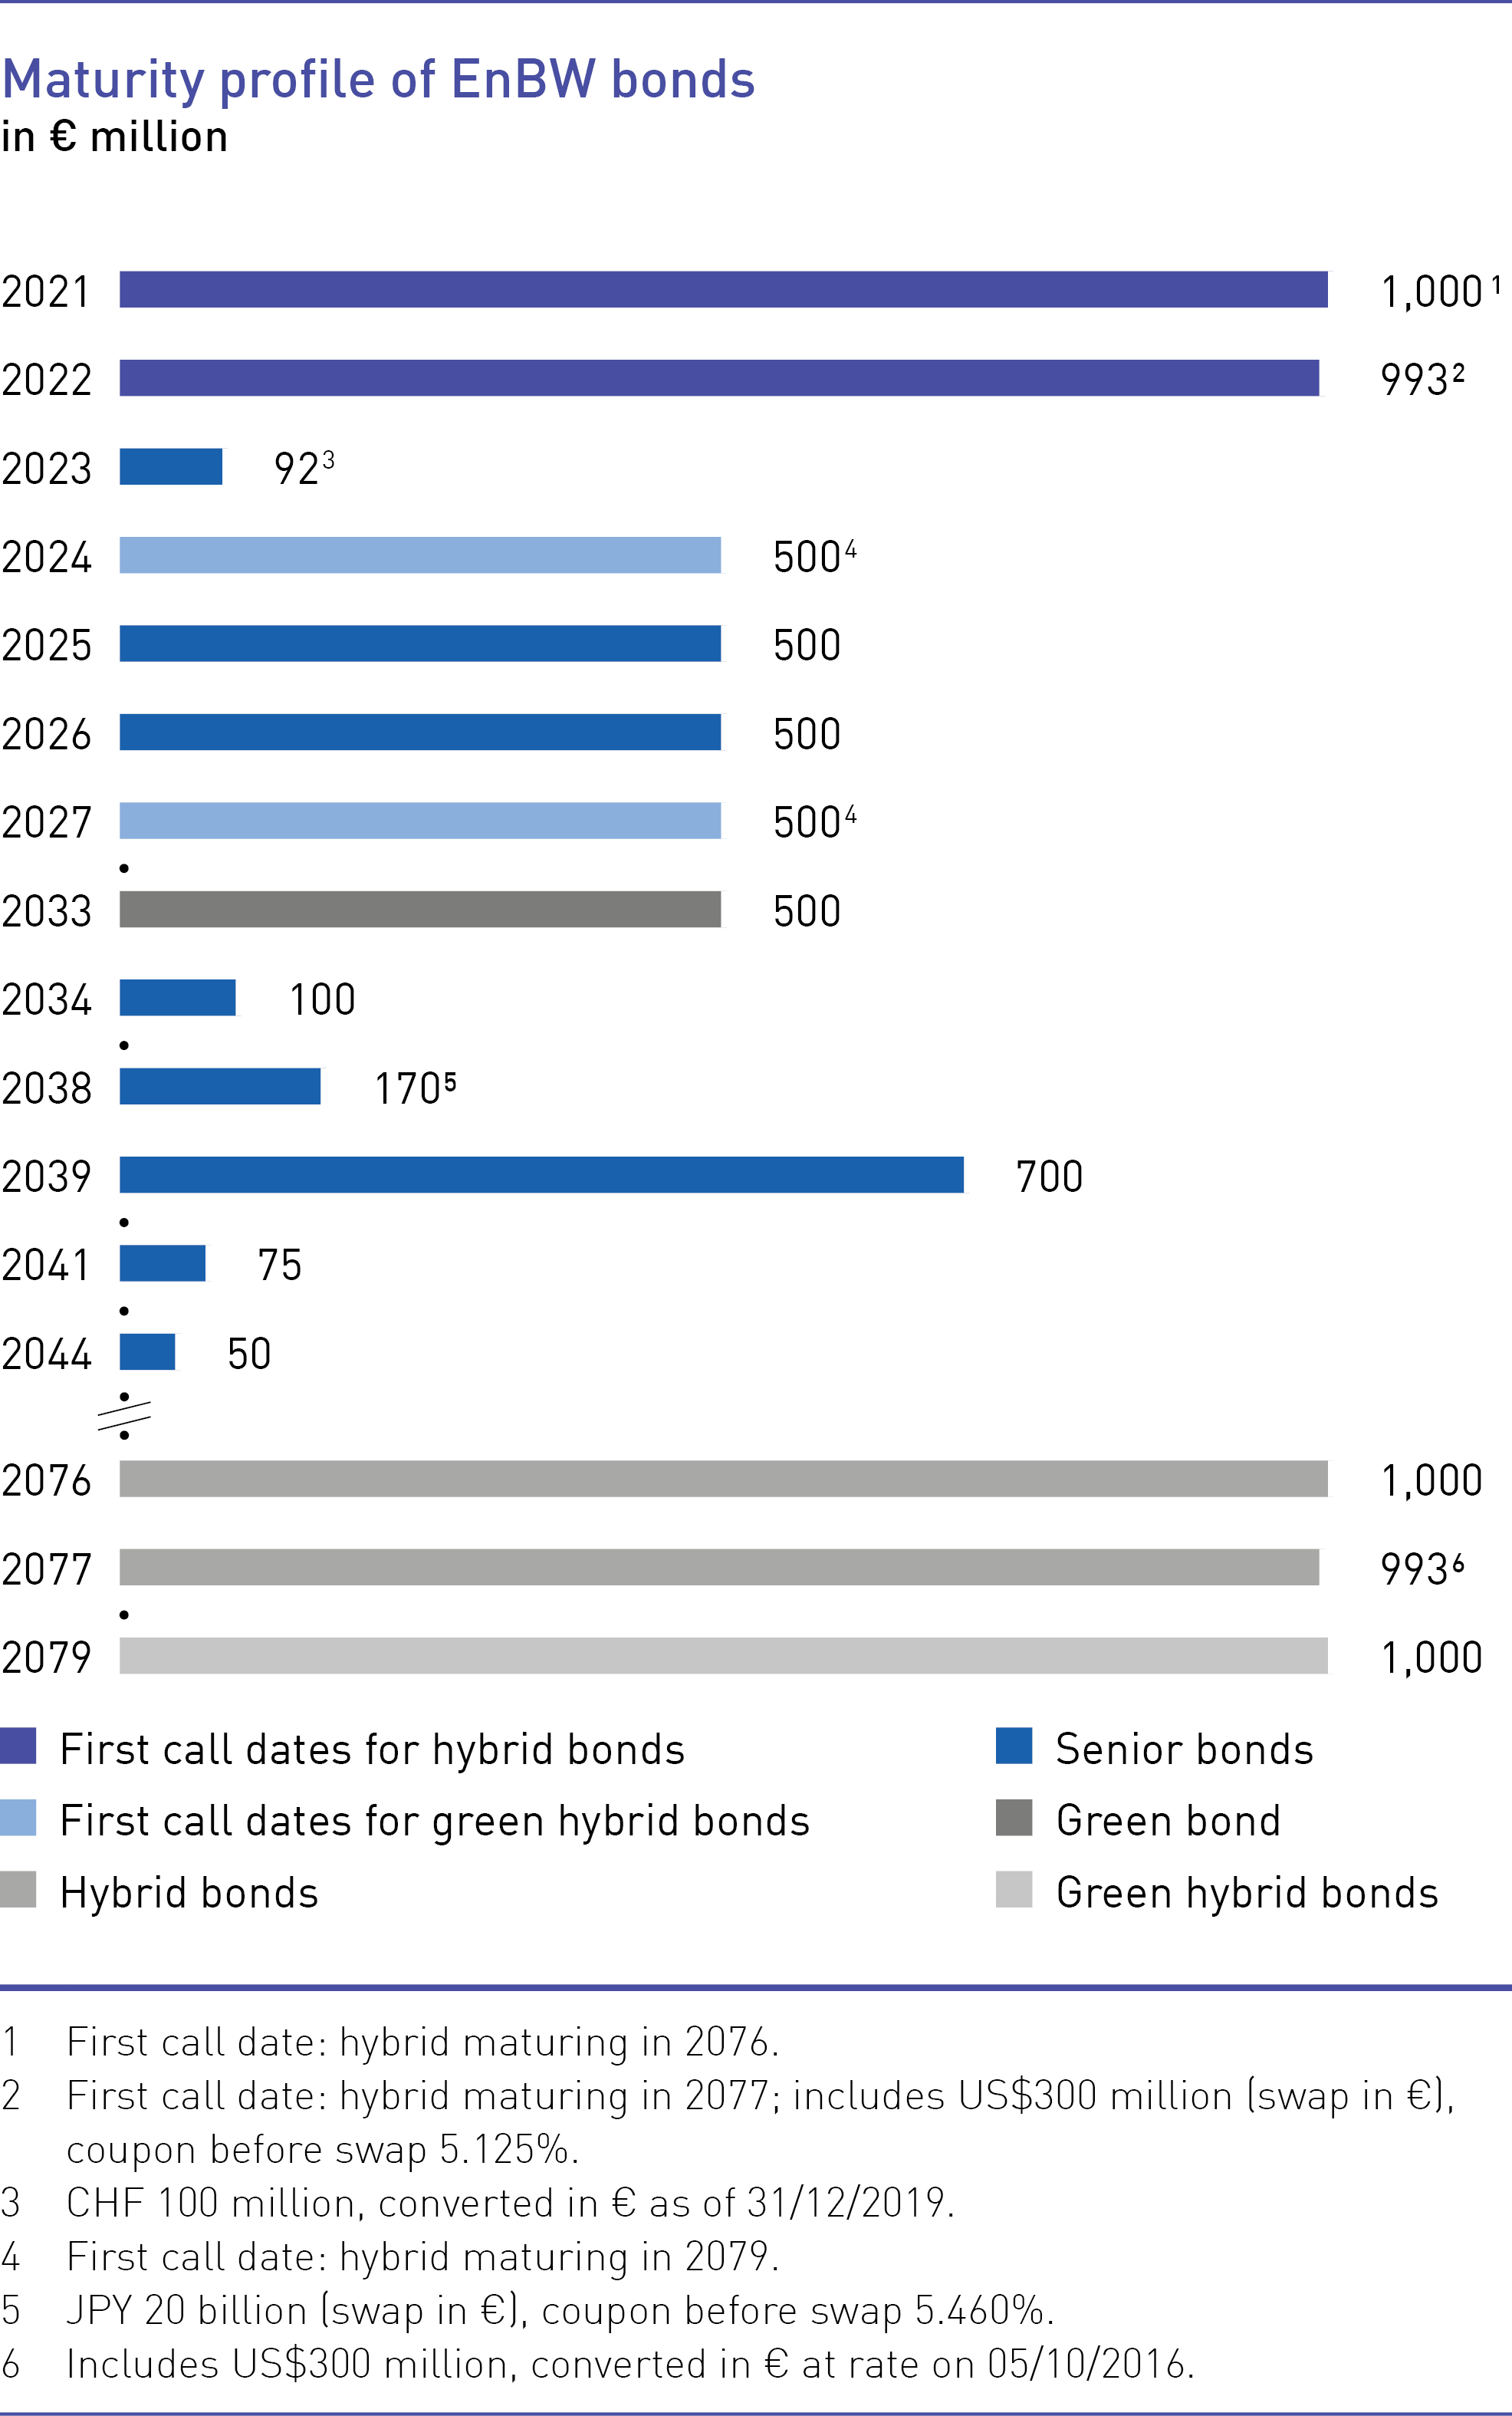 Maturity profile of EnBW bonds